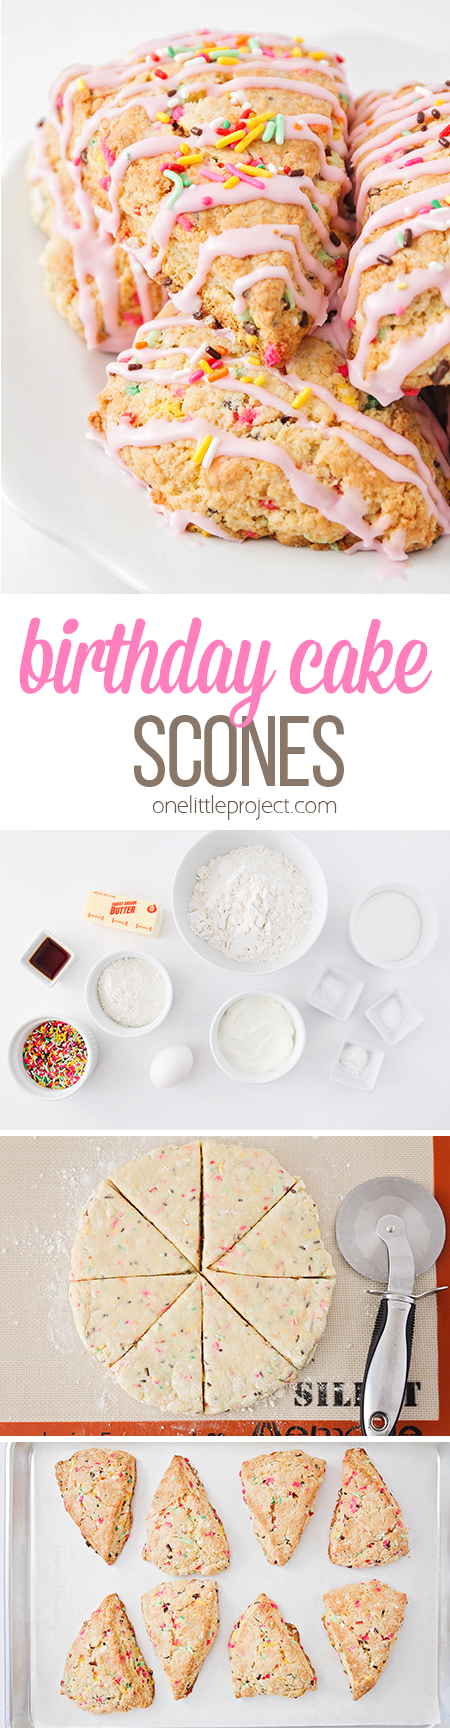 These birthday cake scones taste amazing and are quick and easy to make! They're the perfect fun and festive treat to brighten up any day!